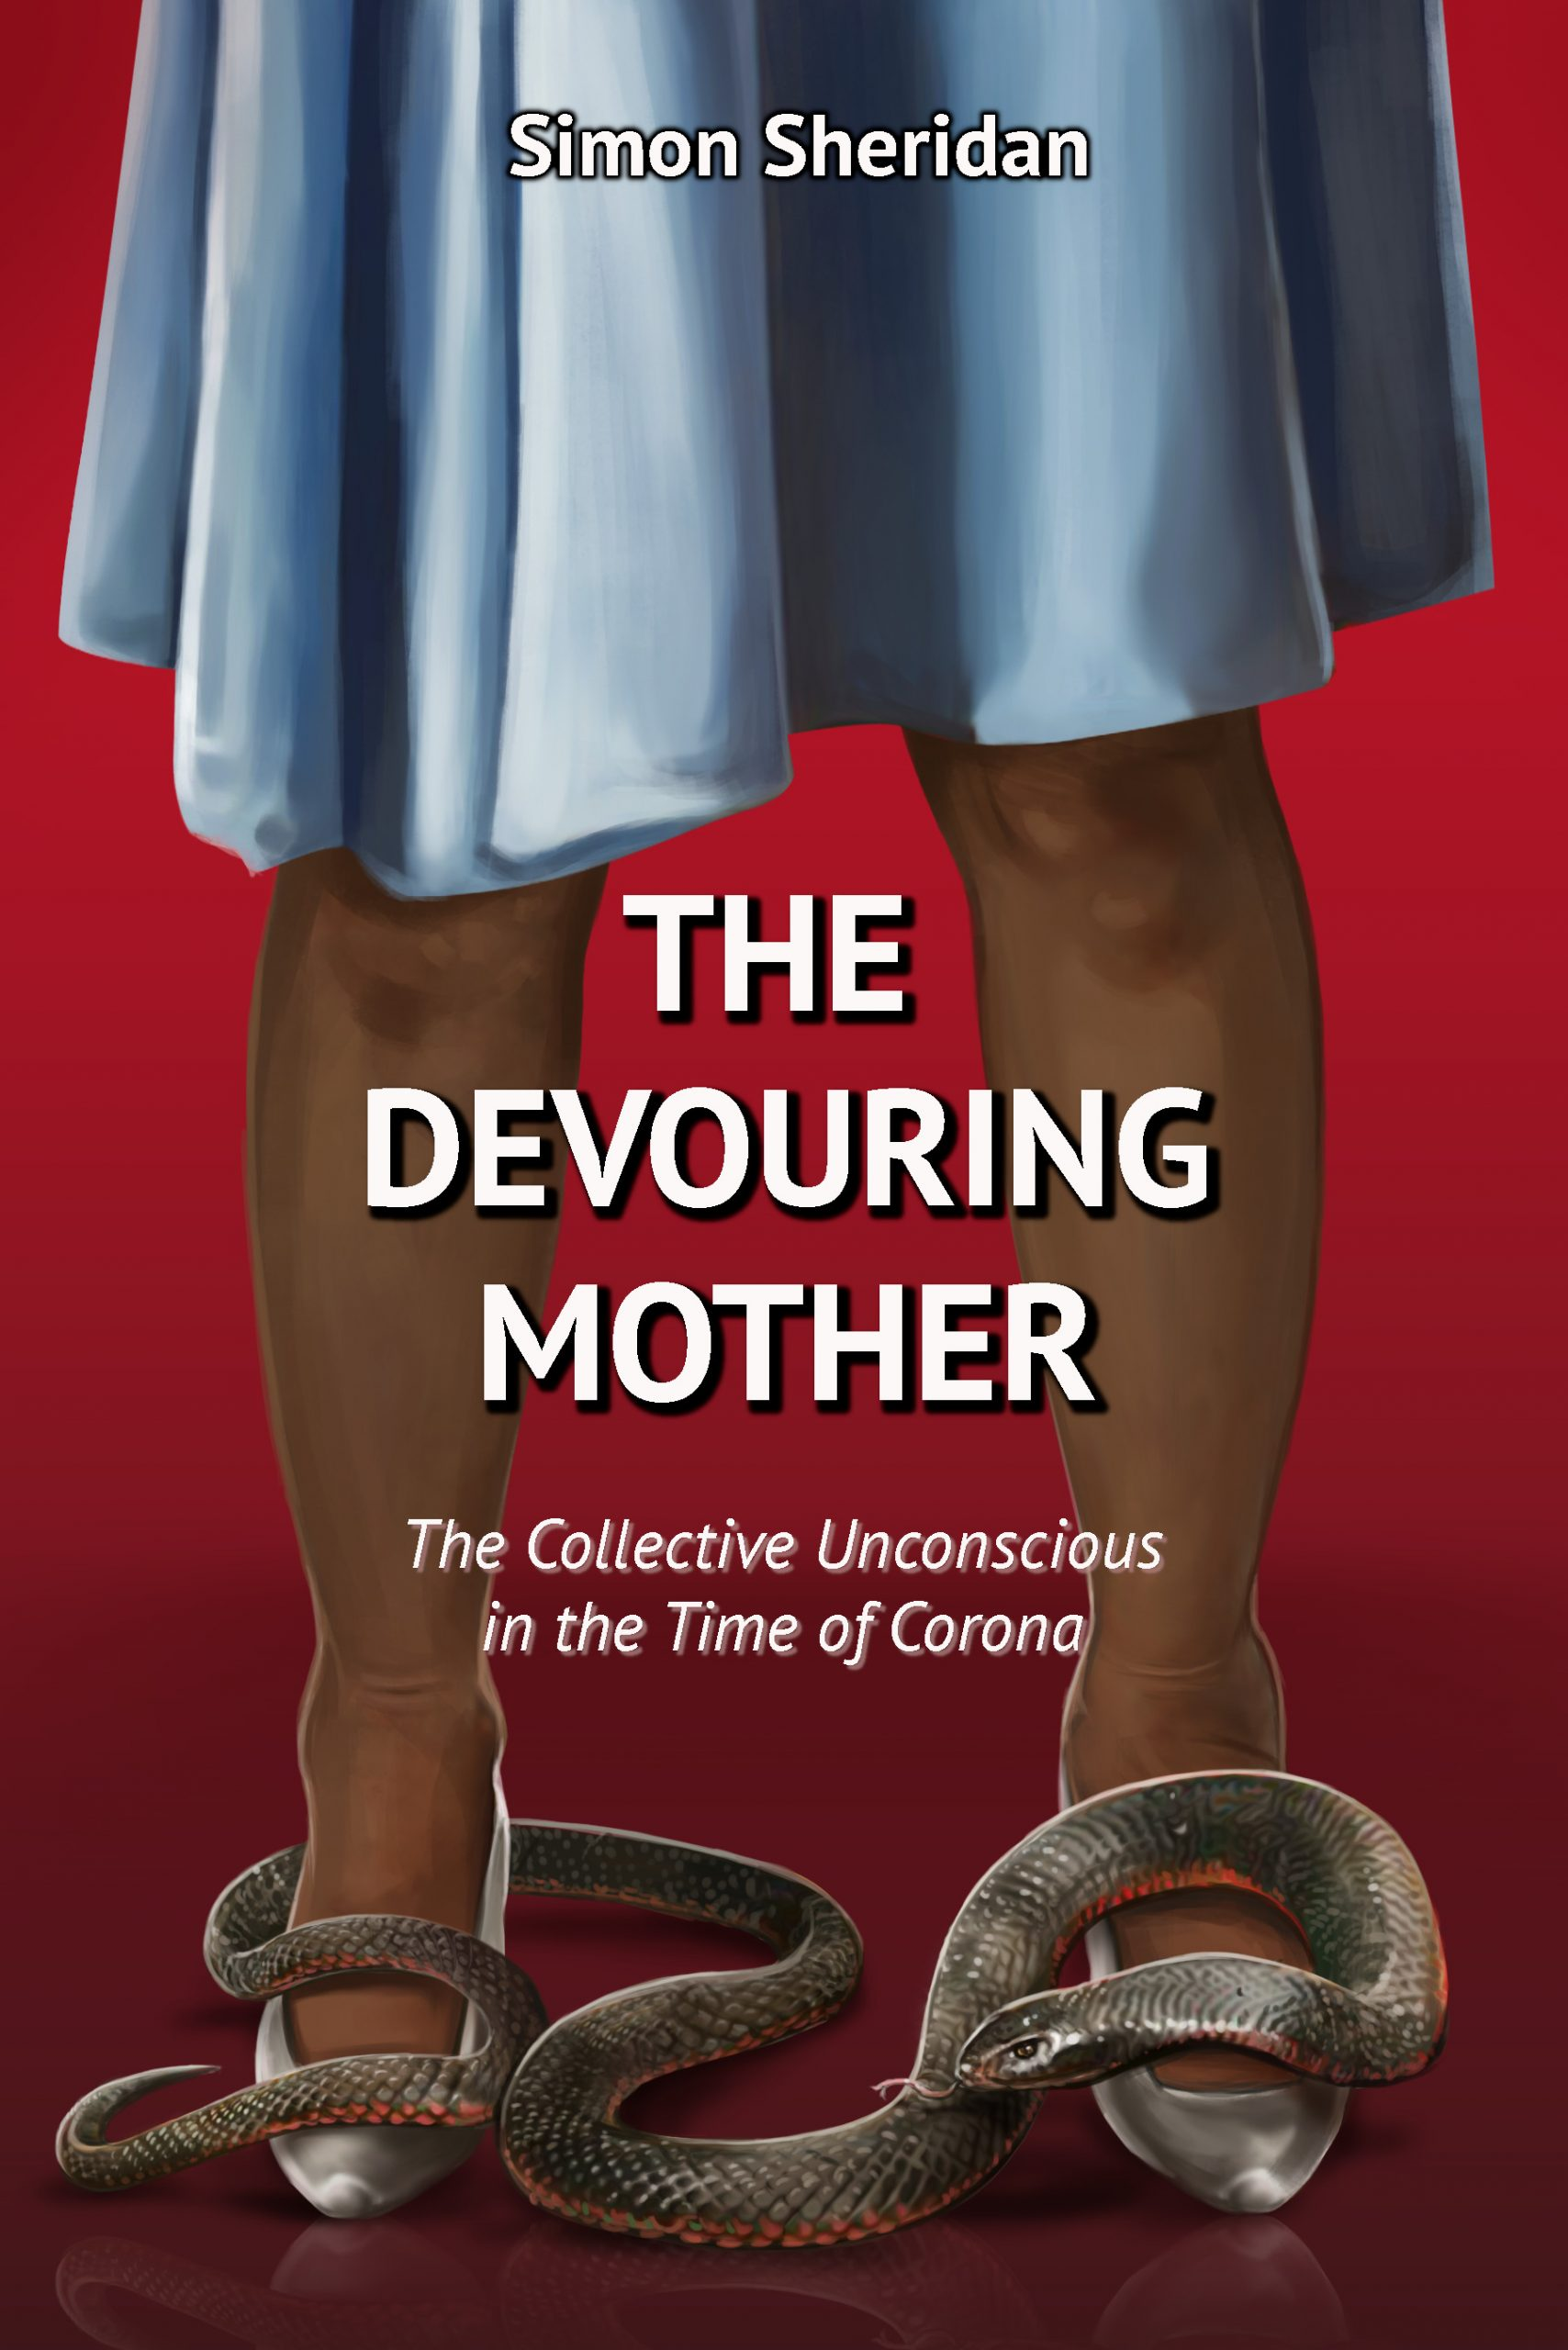 The Devouring Mother